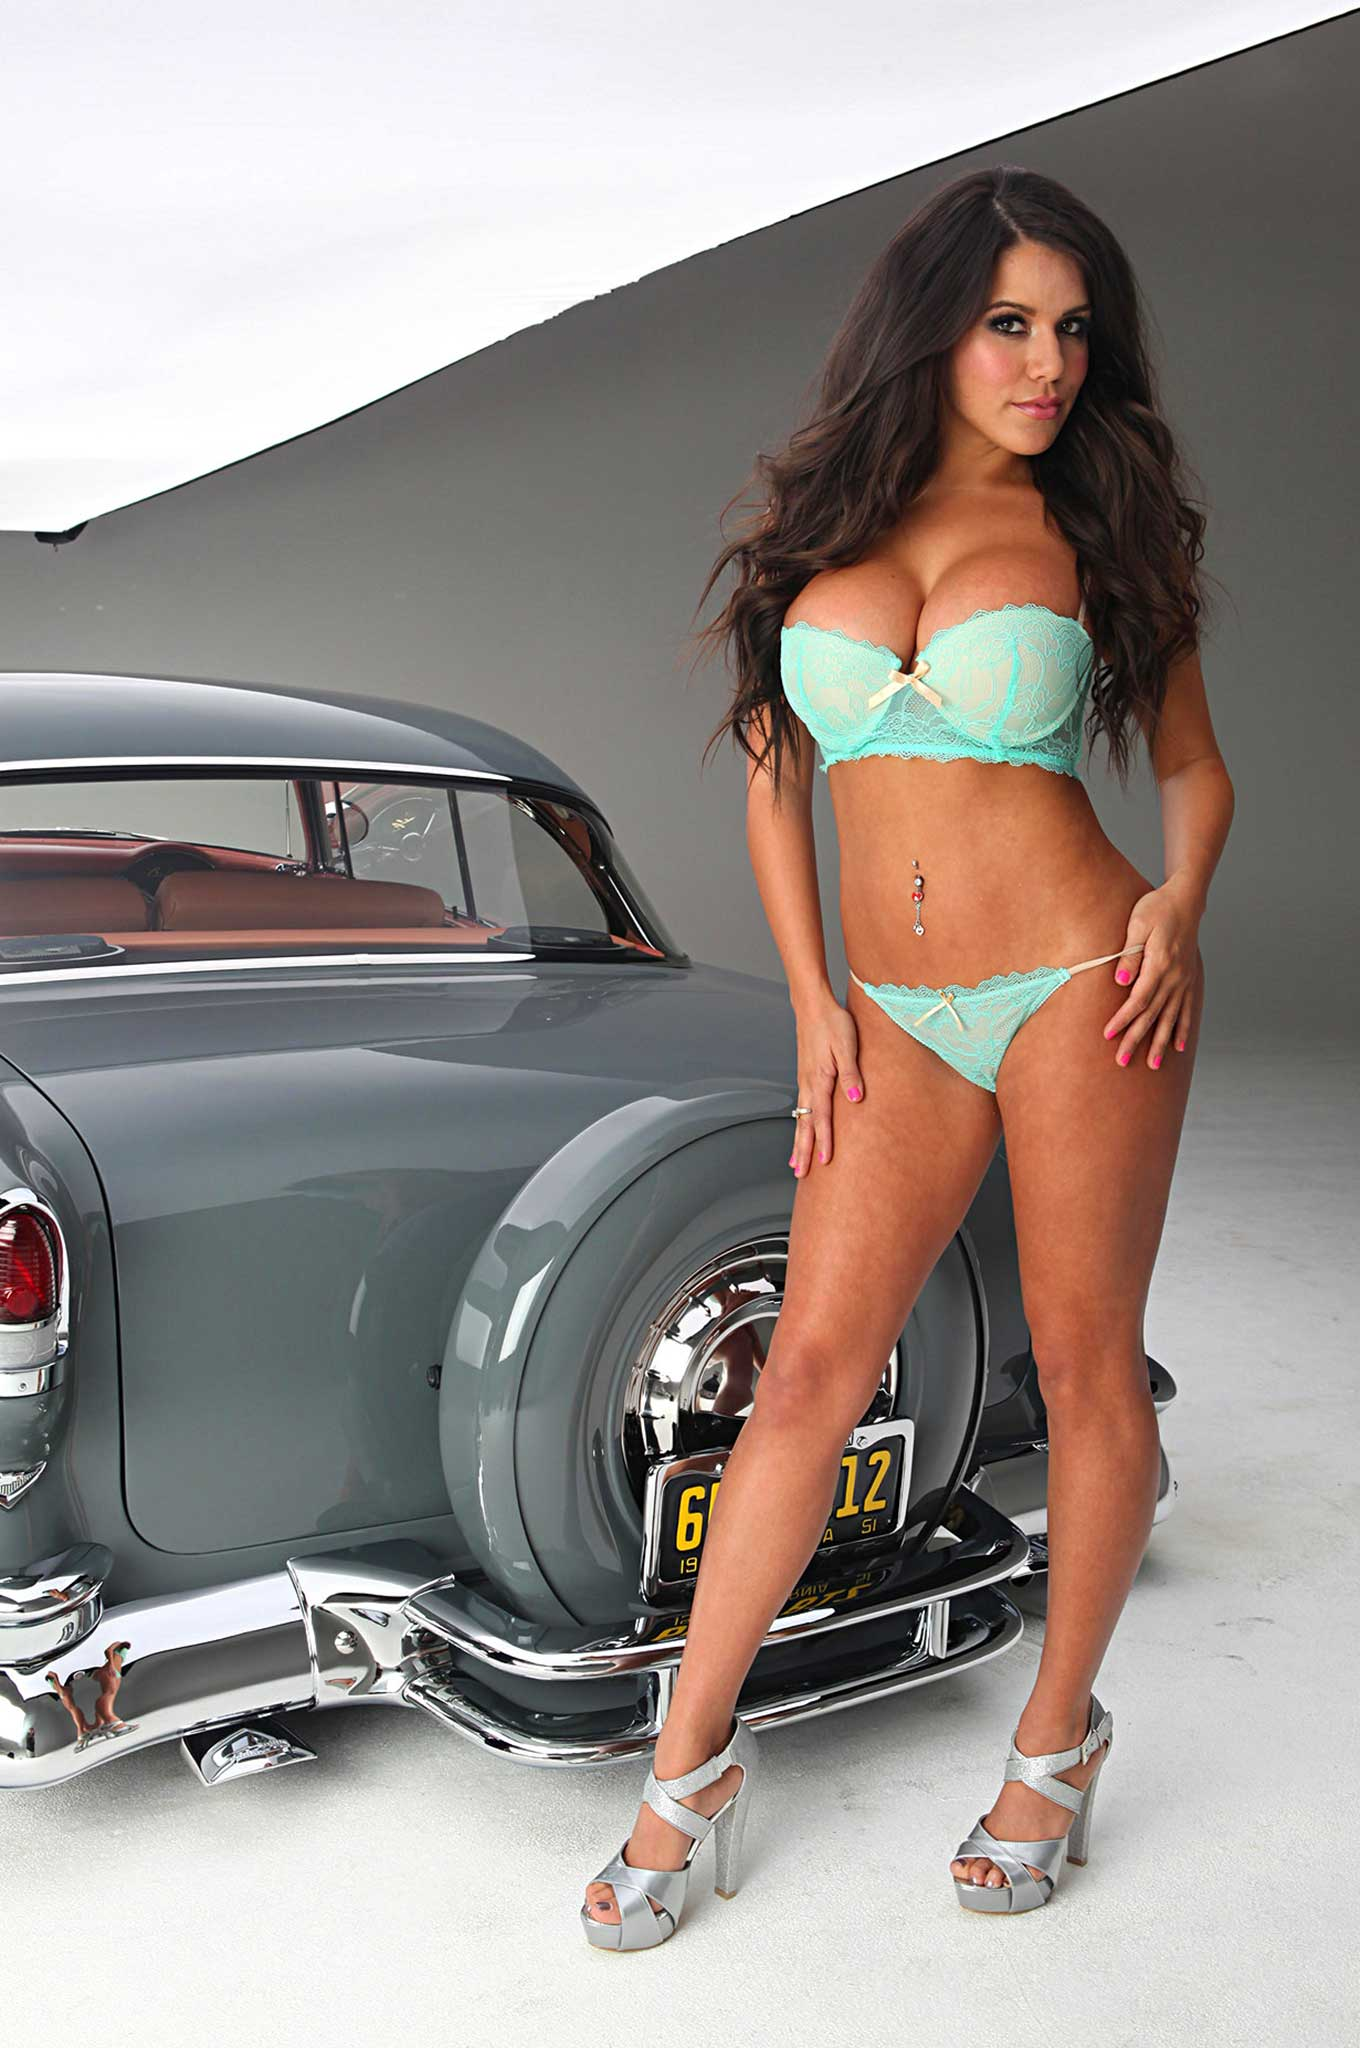 Girls And Lowrider Wallpaper Pic Never Before Seen Pictures Of Chantel Zales